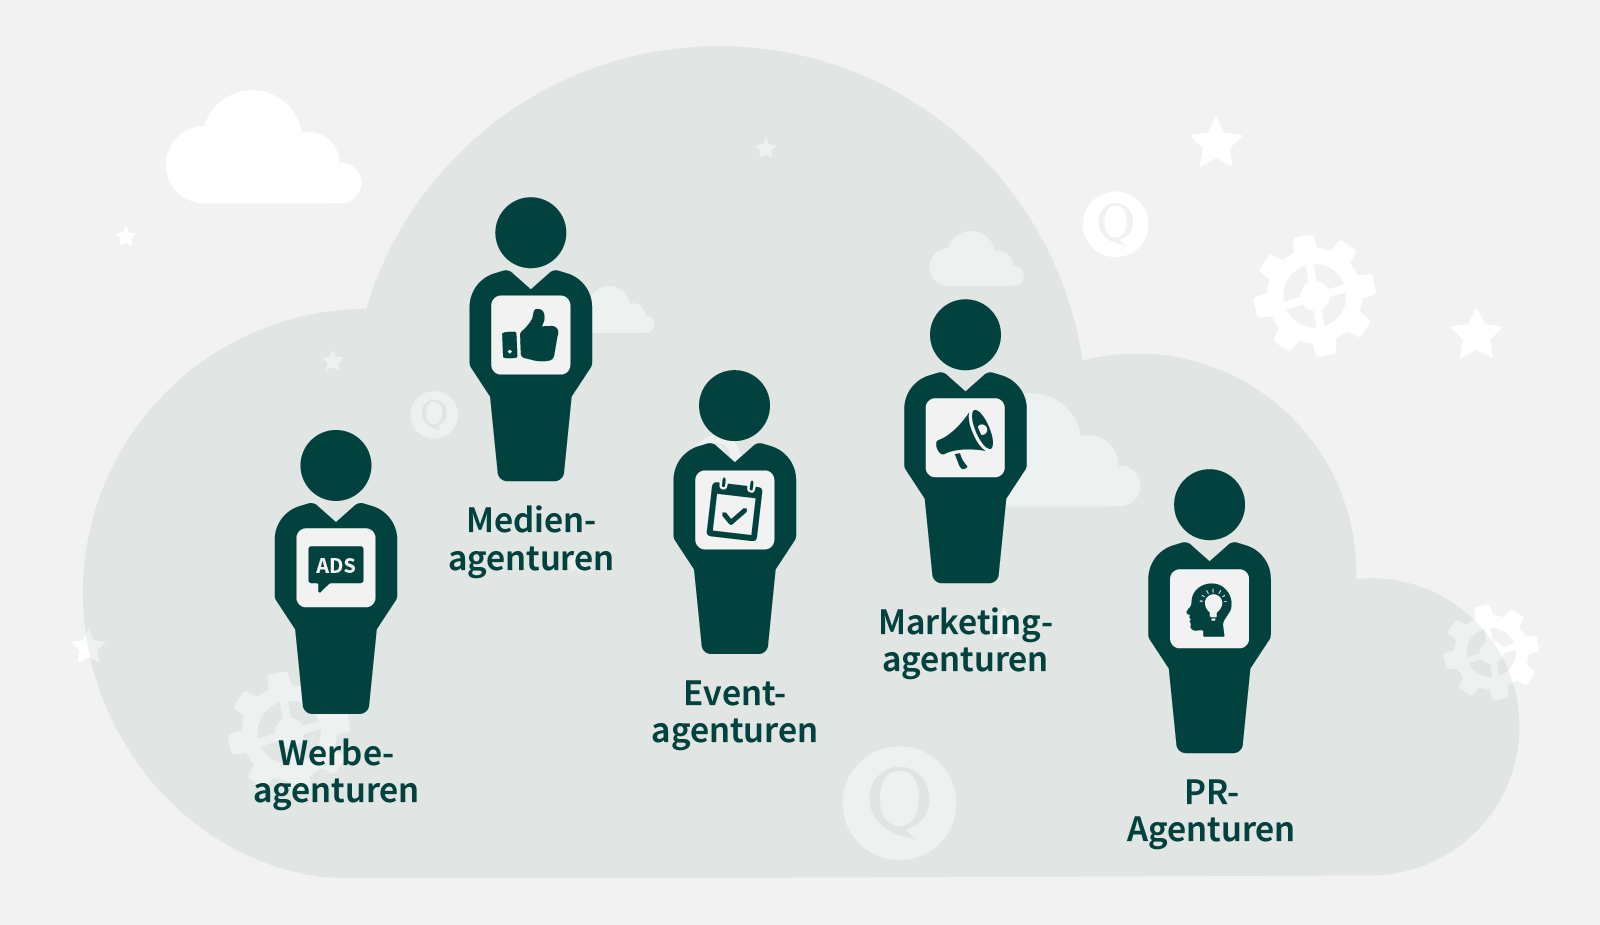 Werbeagenturen, Medienagenturen, Eventagenturen, Marketingagenturen, PR-Agenturen